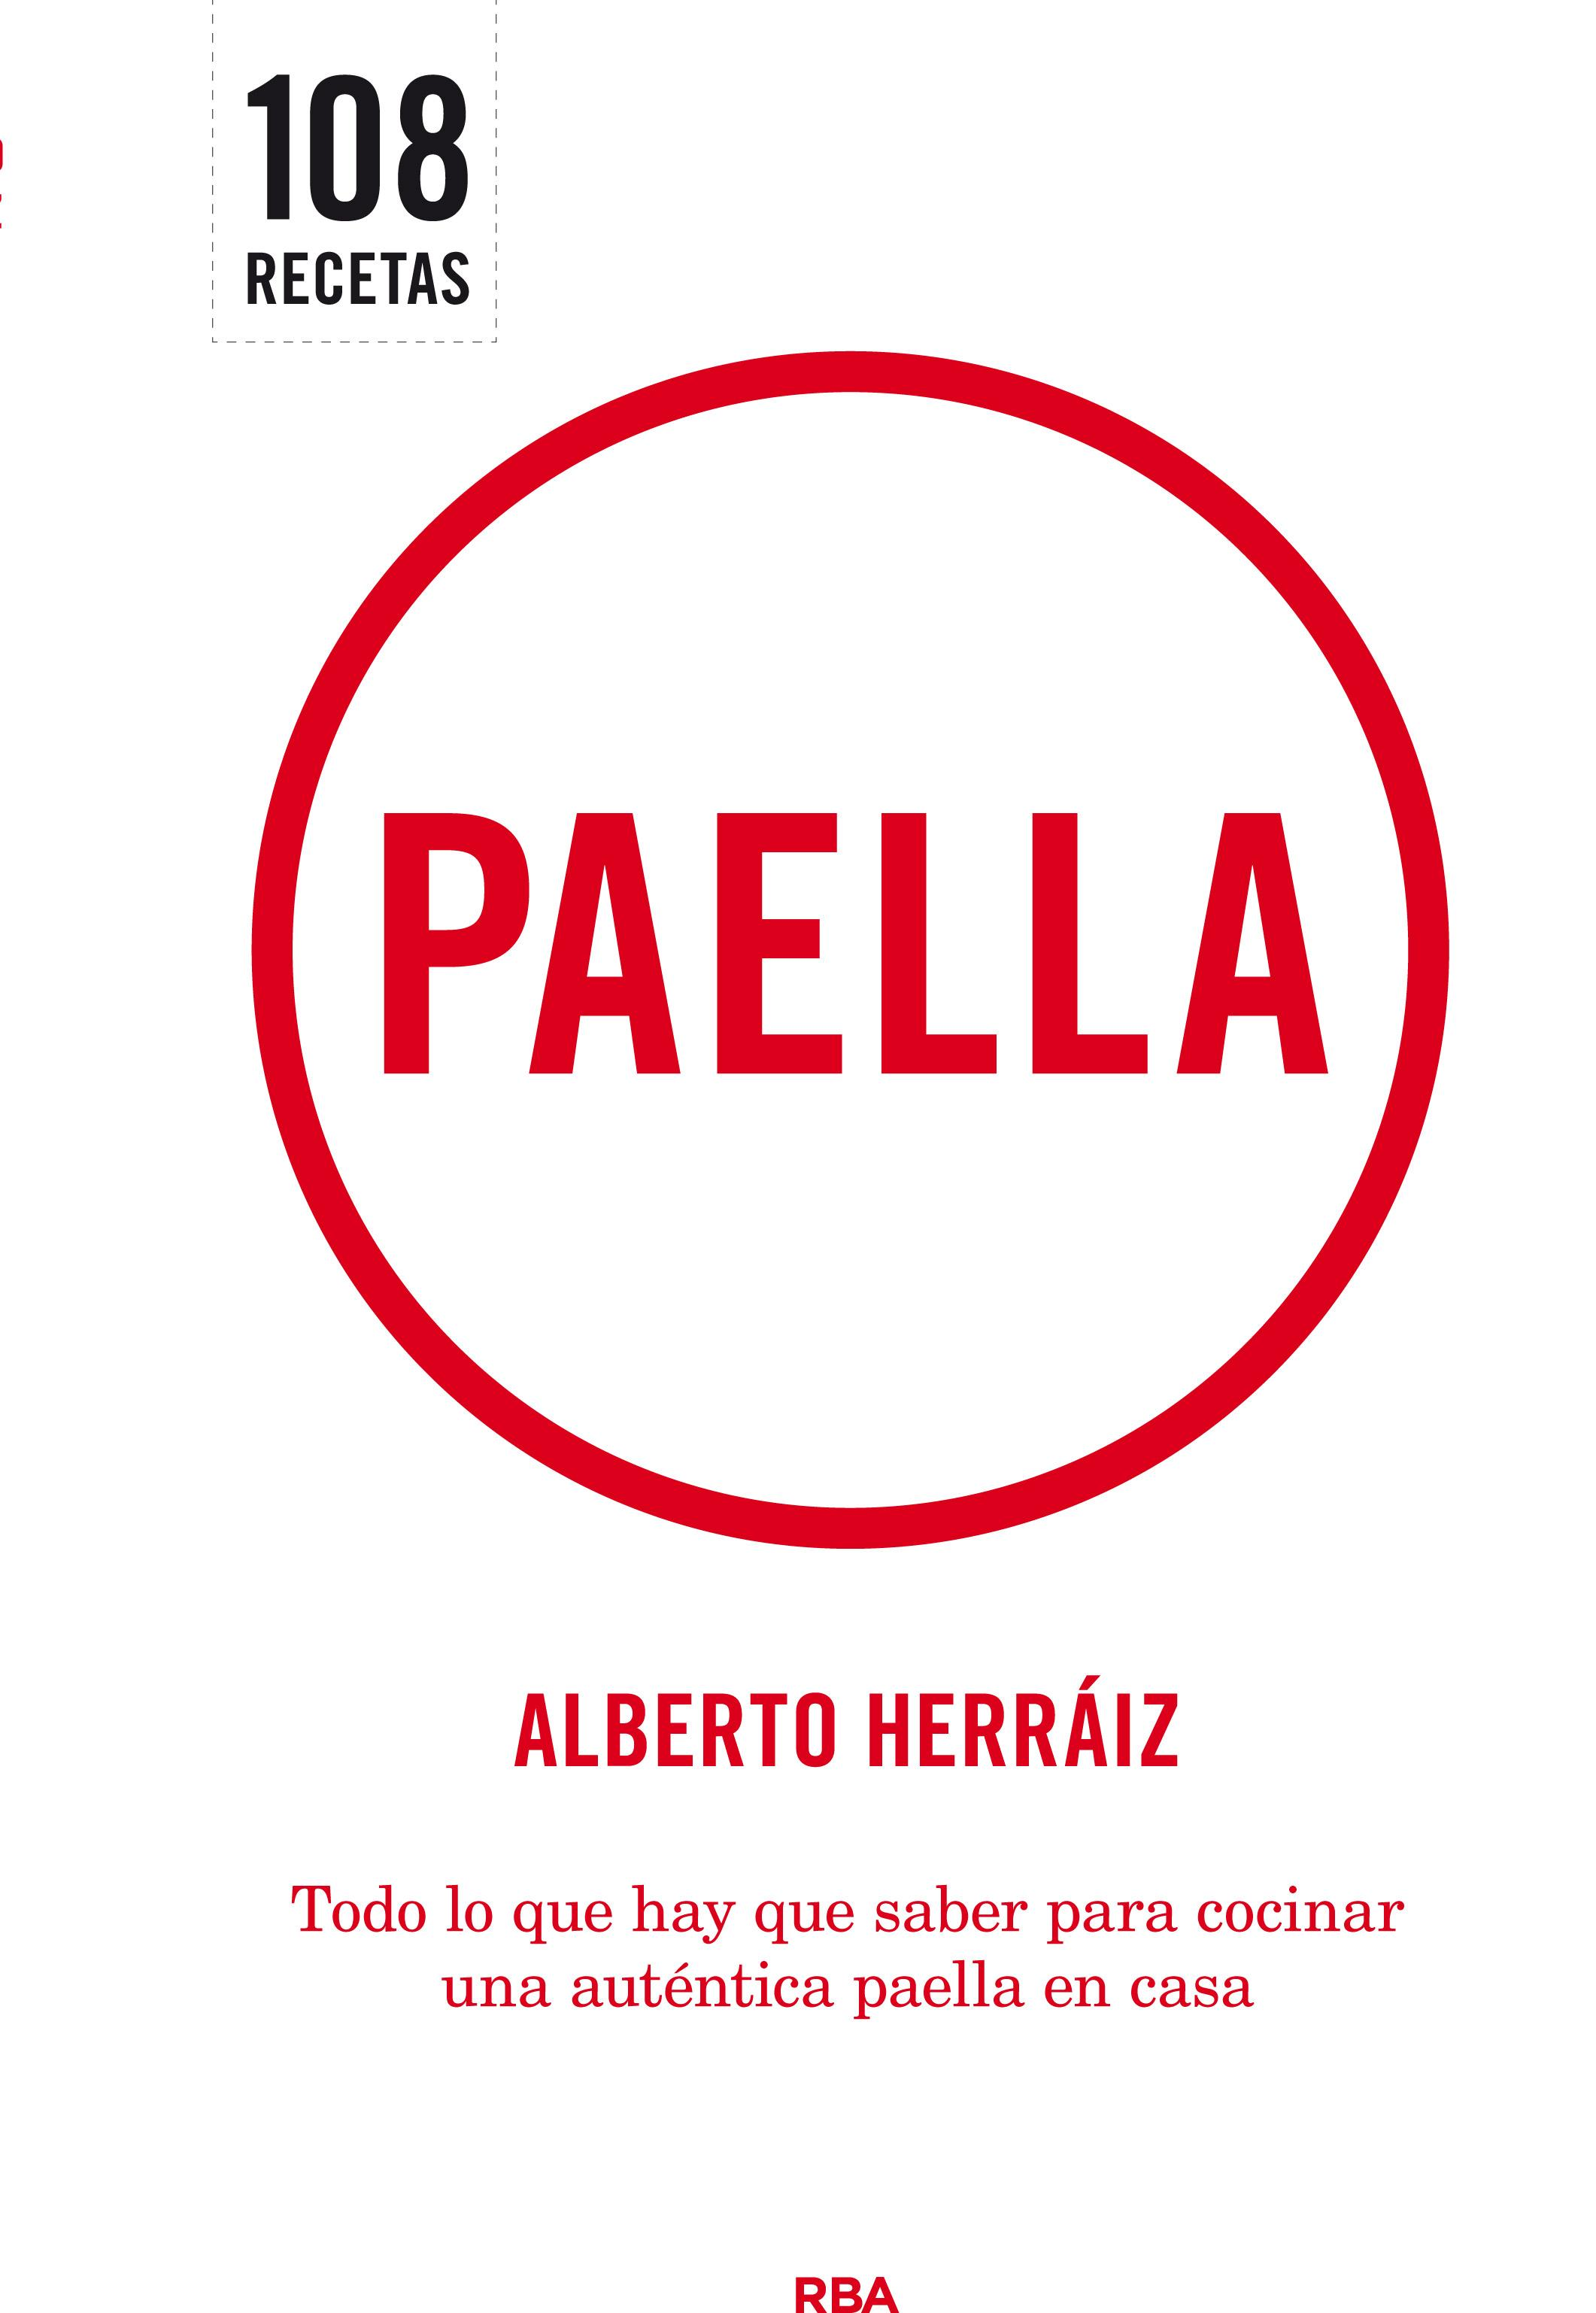 Paella, y arroces - $25.900